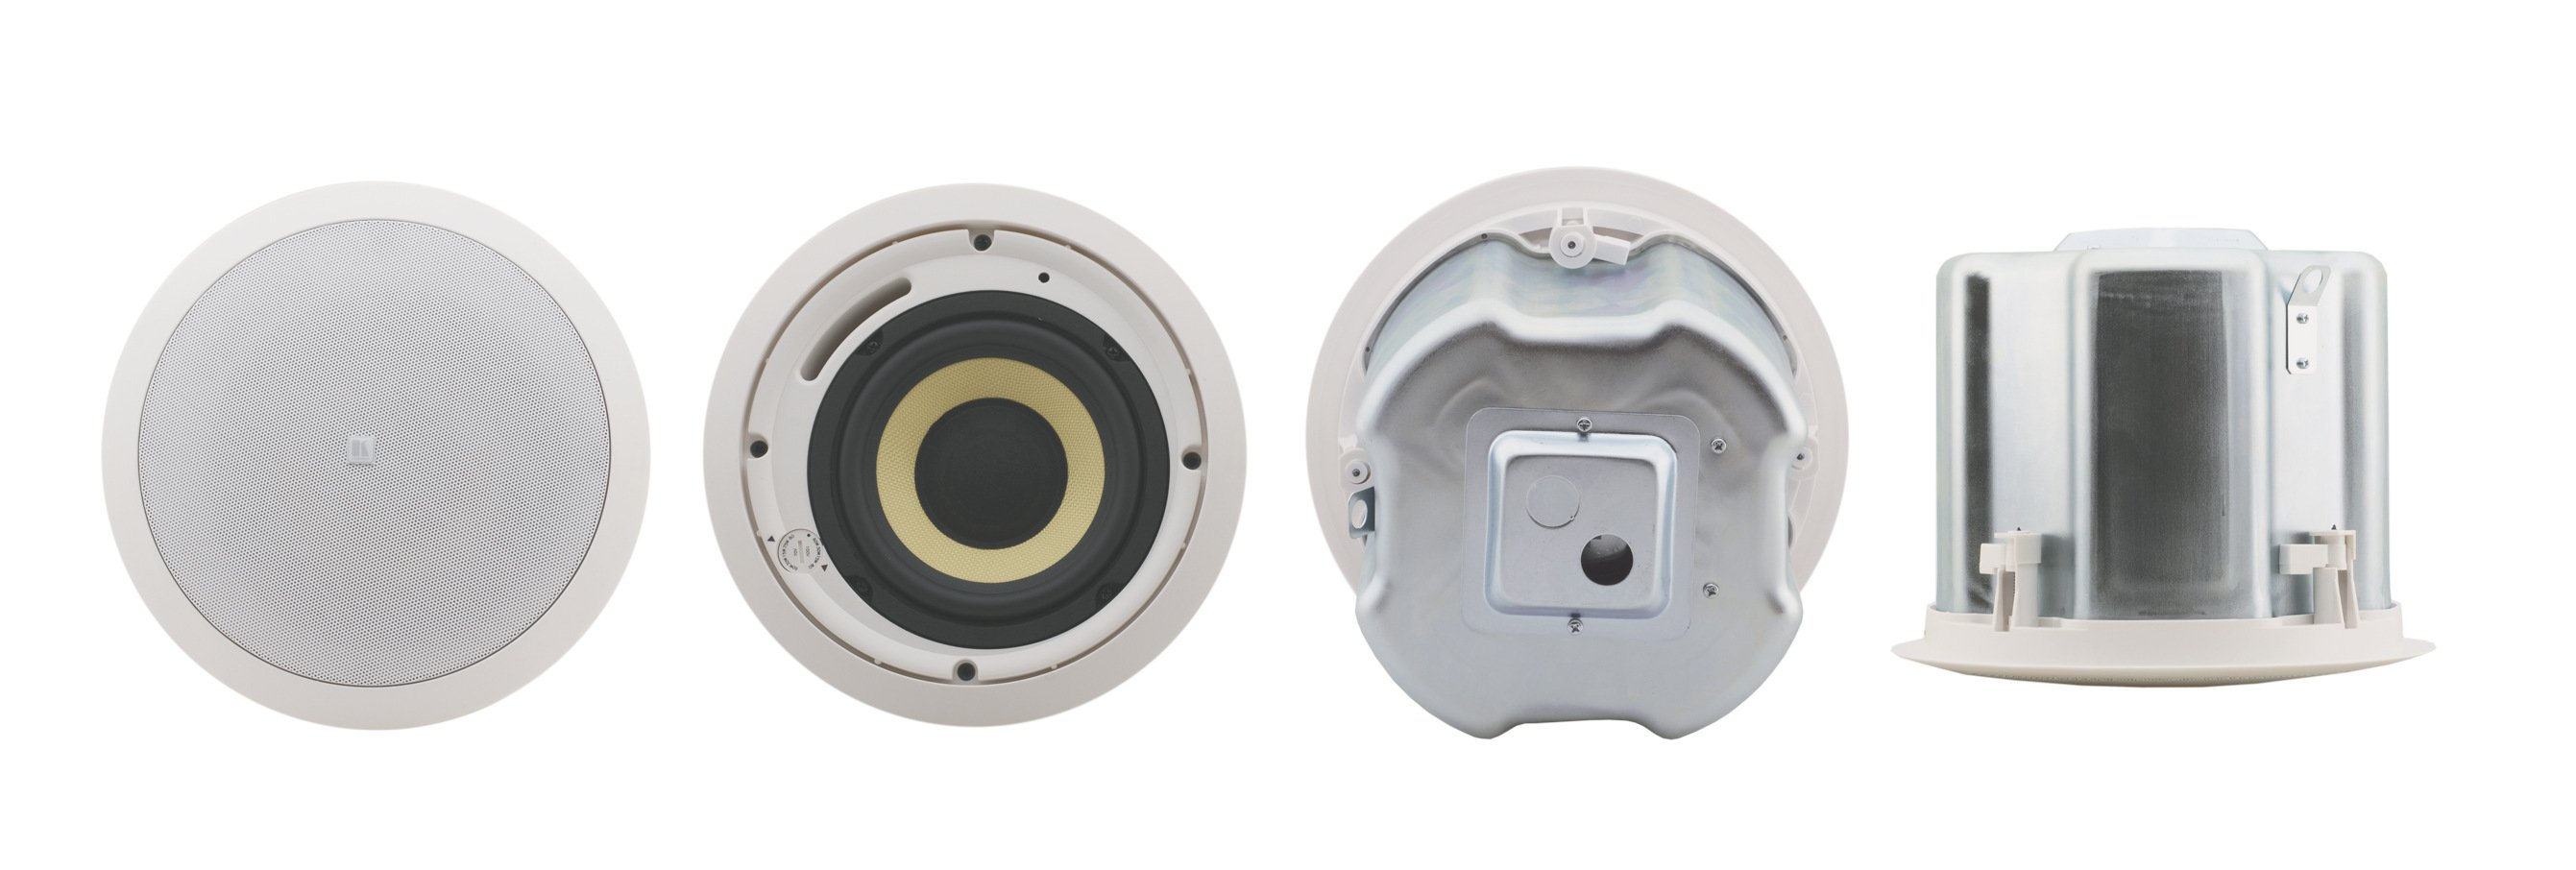 "Pair of White 6.5"", 2-Way, Closed-Back Ceilng Speaker"